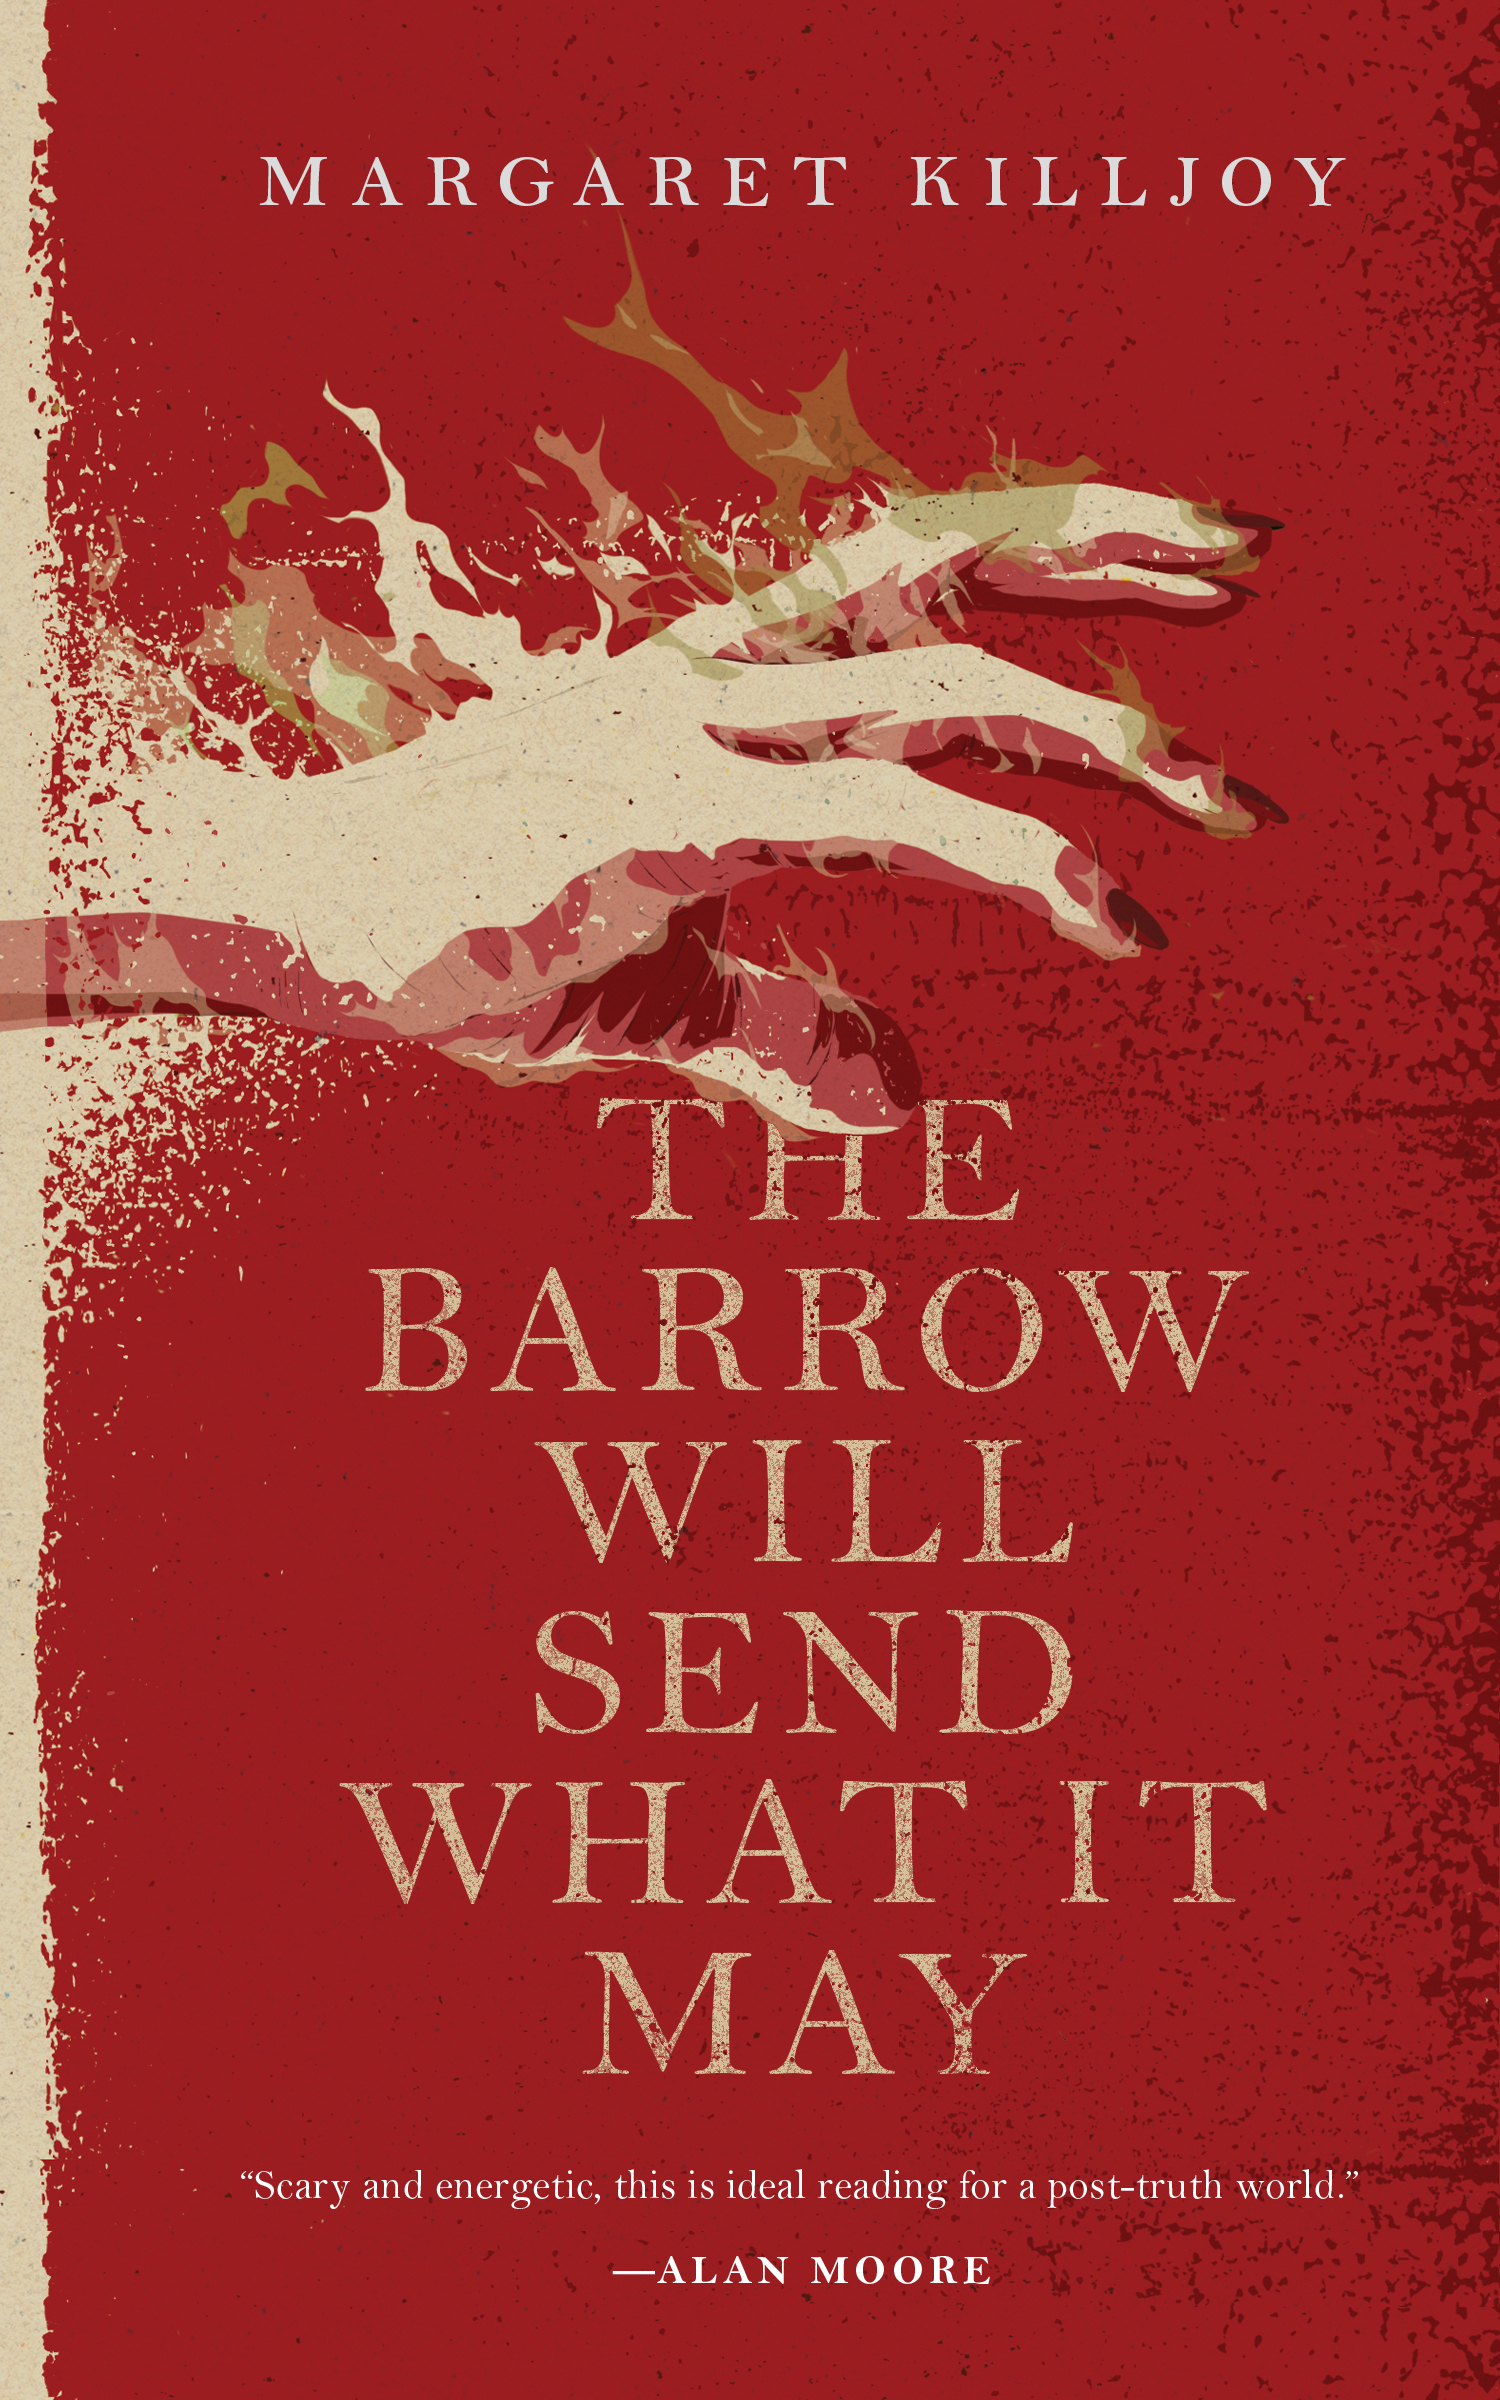 TheBarrow_MargaretKilljoy